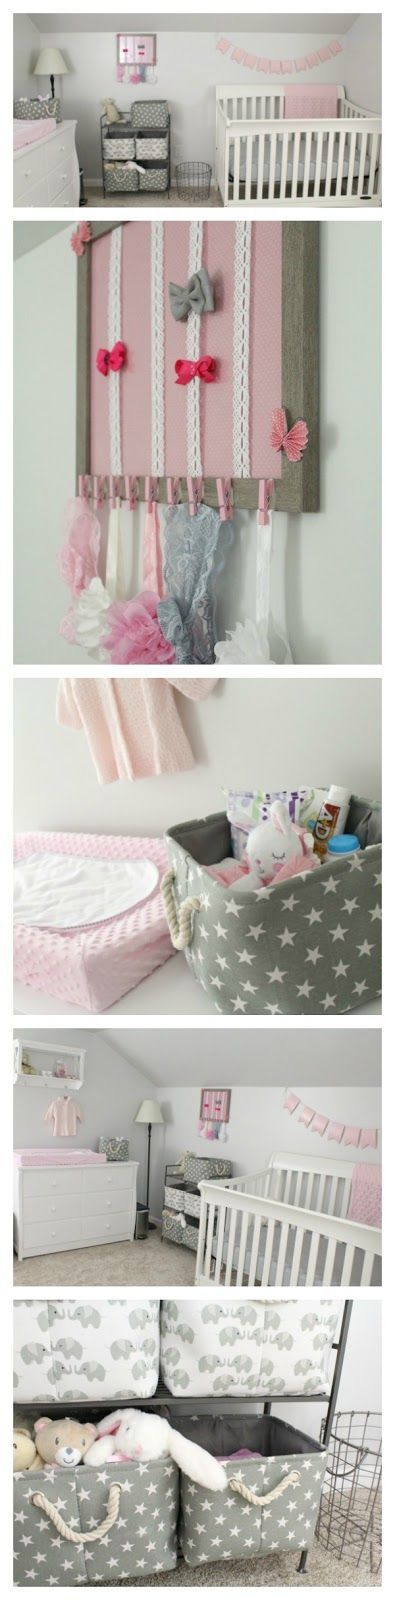 Gray, white, and light pink nursery for a baby girl- Minky pink changing pad cover, white dresser as changing table, hair bow and headband decorative frame, grey canvas and rope decorative storage baskets with stars and elephants, metal wire laundry baske